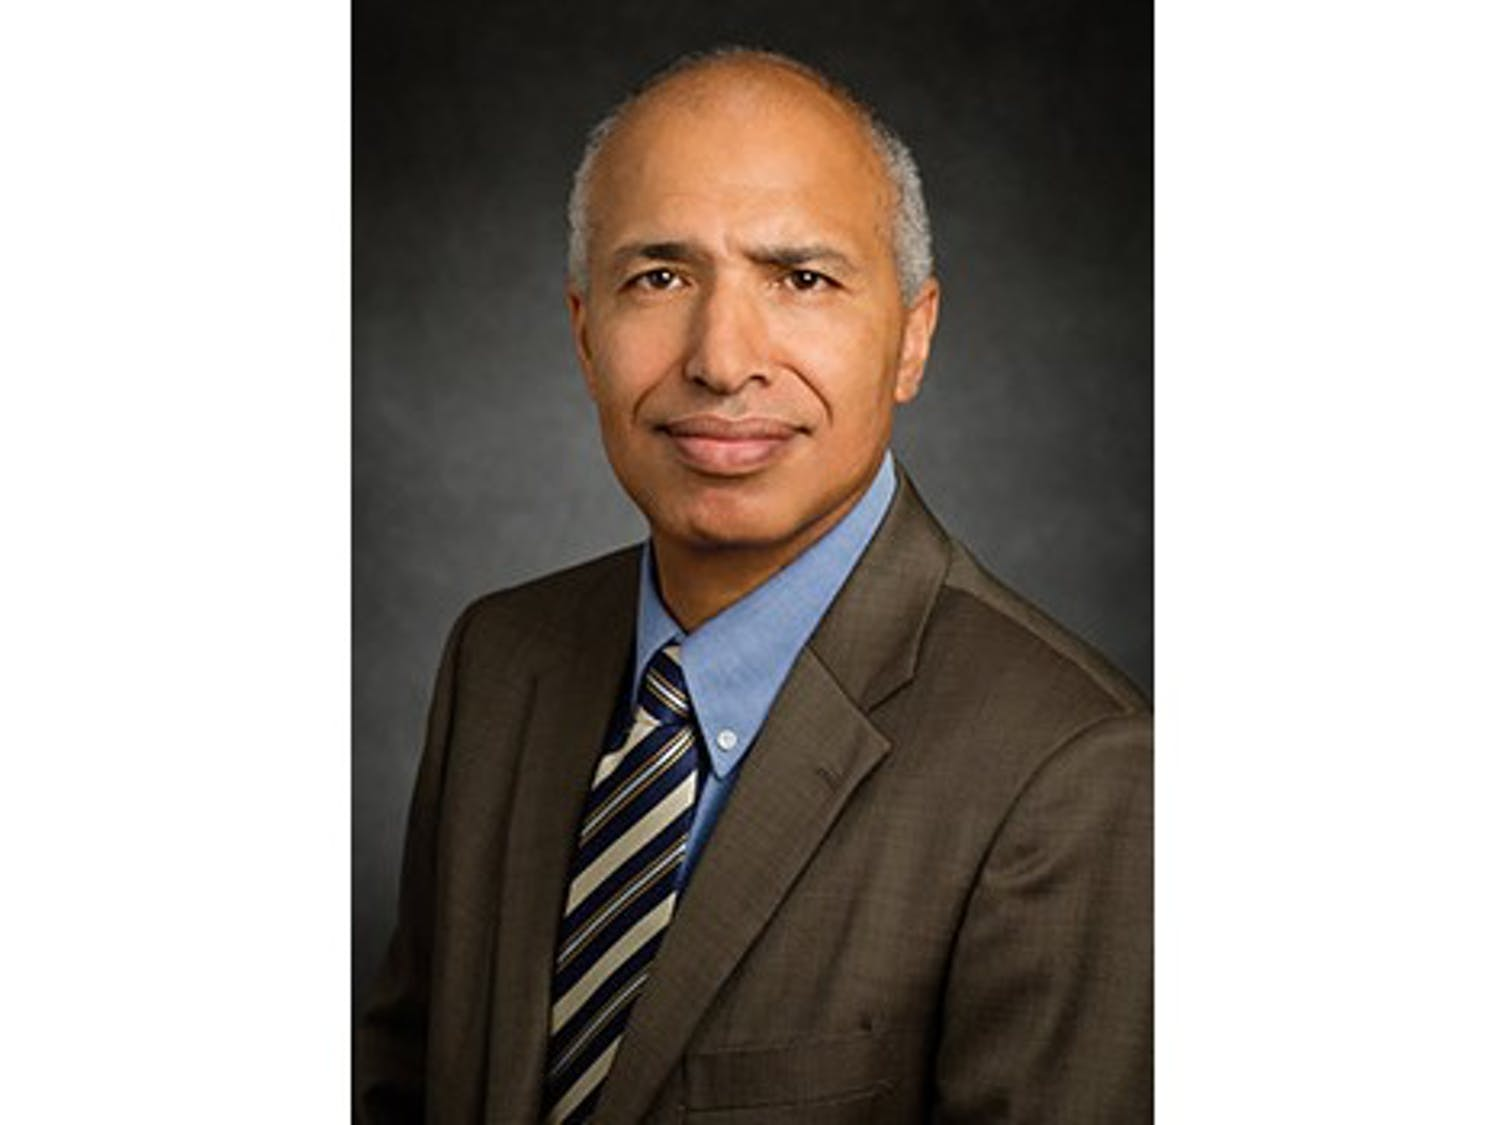 Benmamoun iscurrently vice provost for faculty affairs and academic policies at the University of Illinois at Urbana-Champaign.